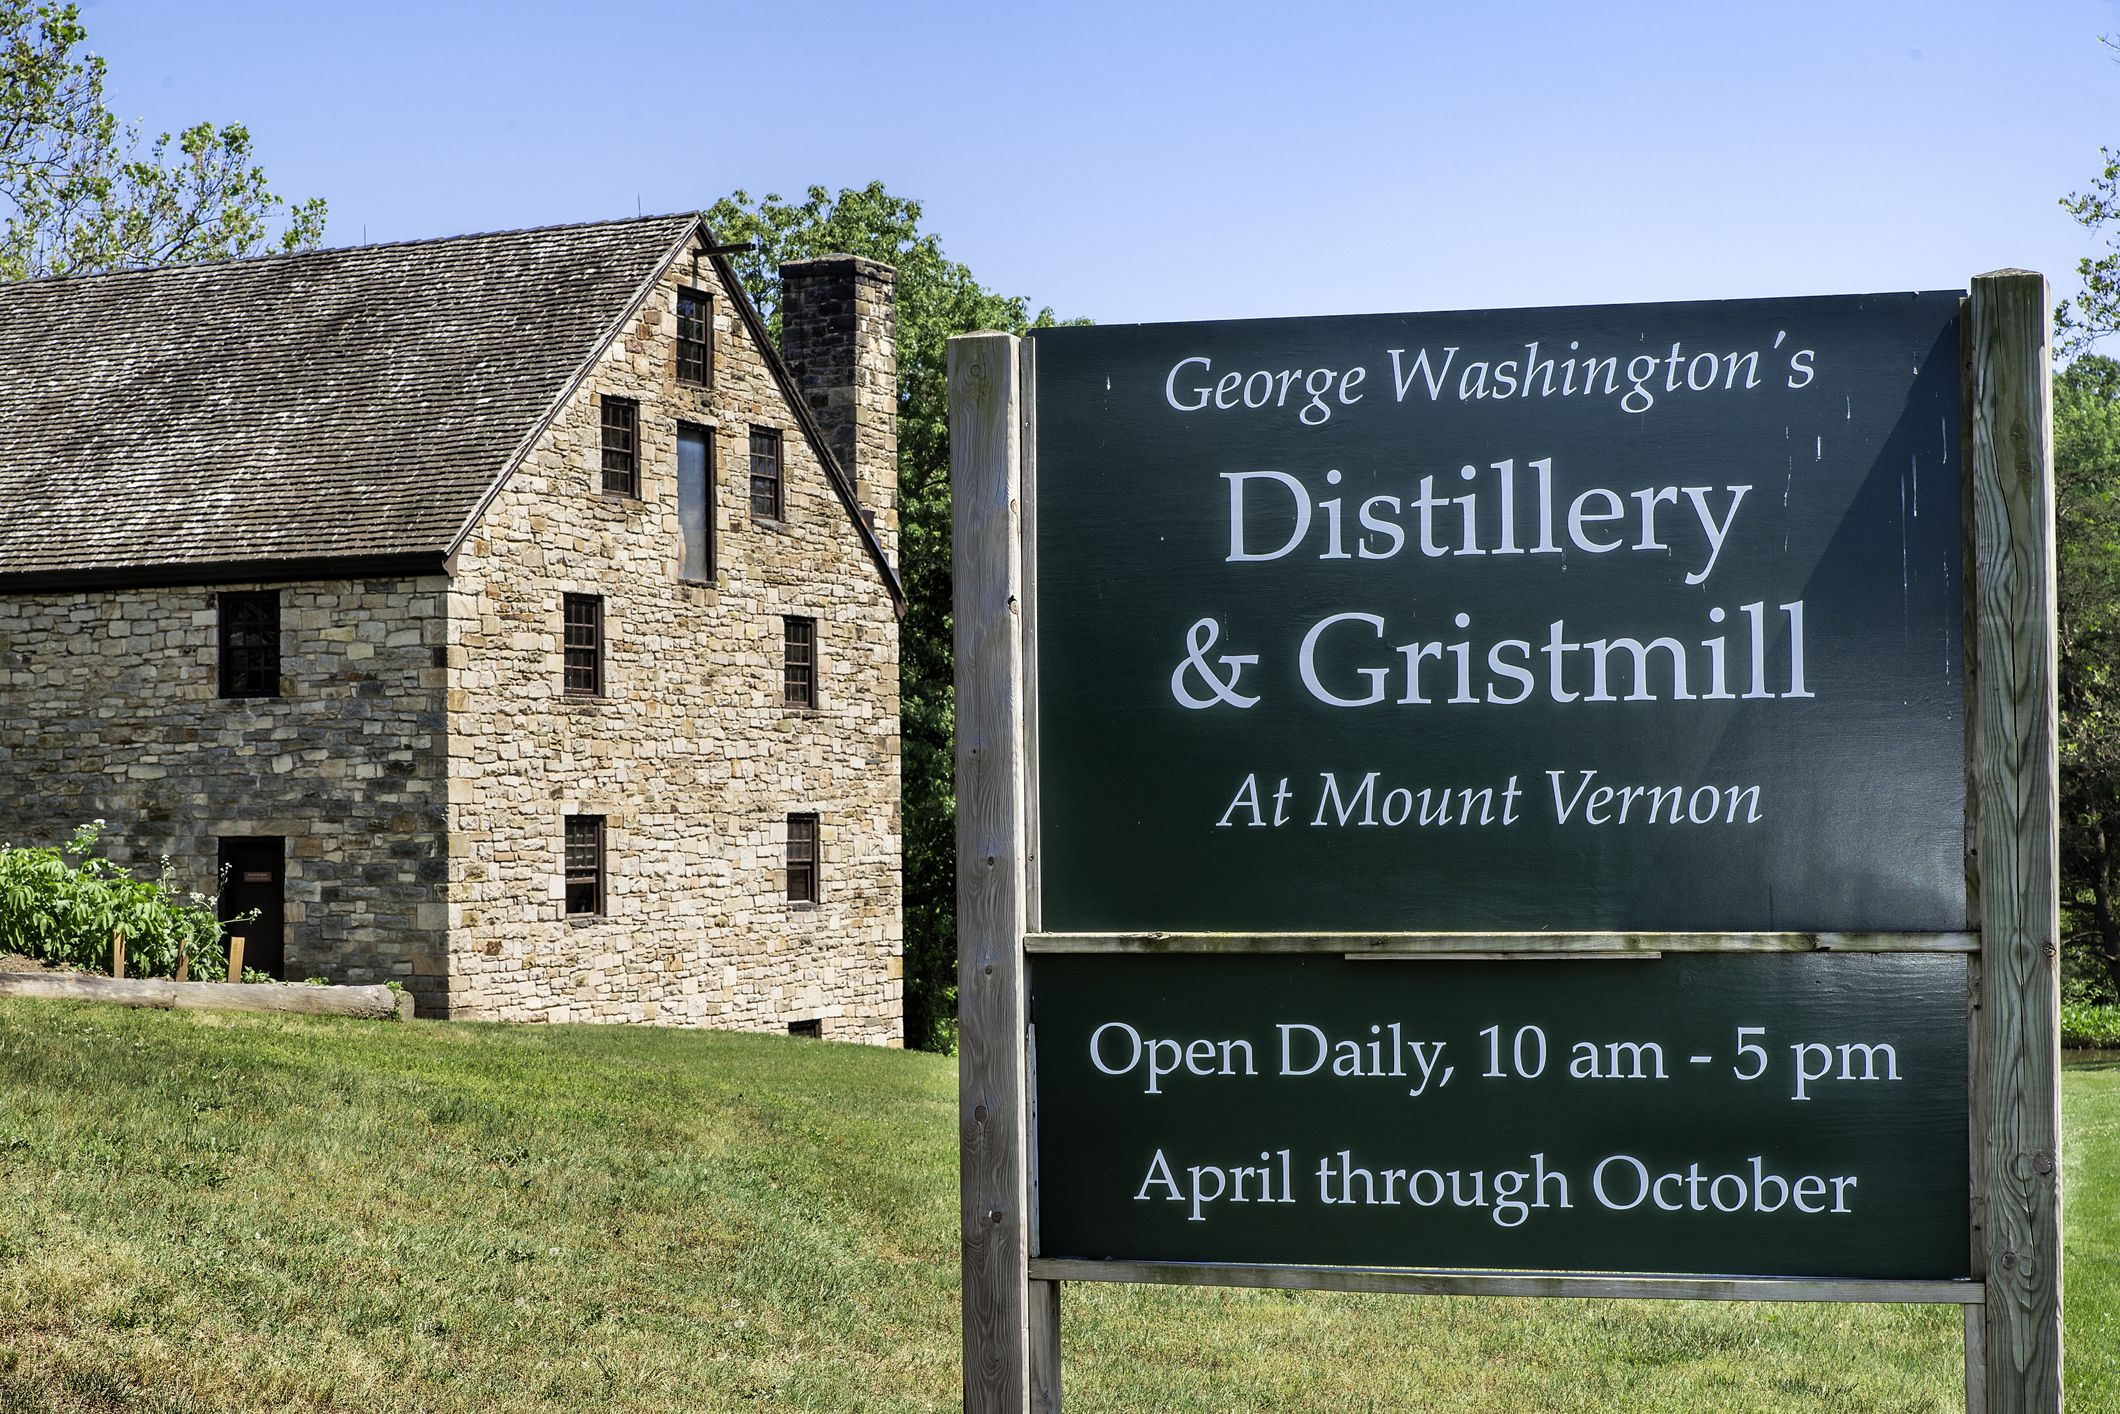 The George Washington Gristmill and Distillery at Mt Vernon